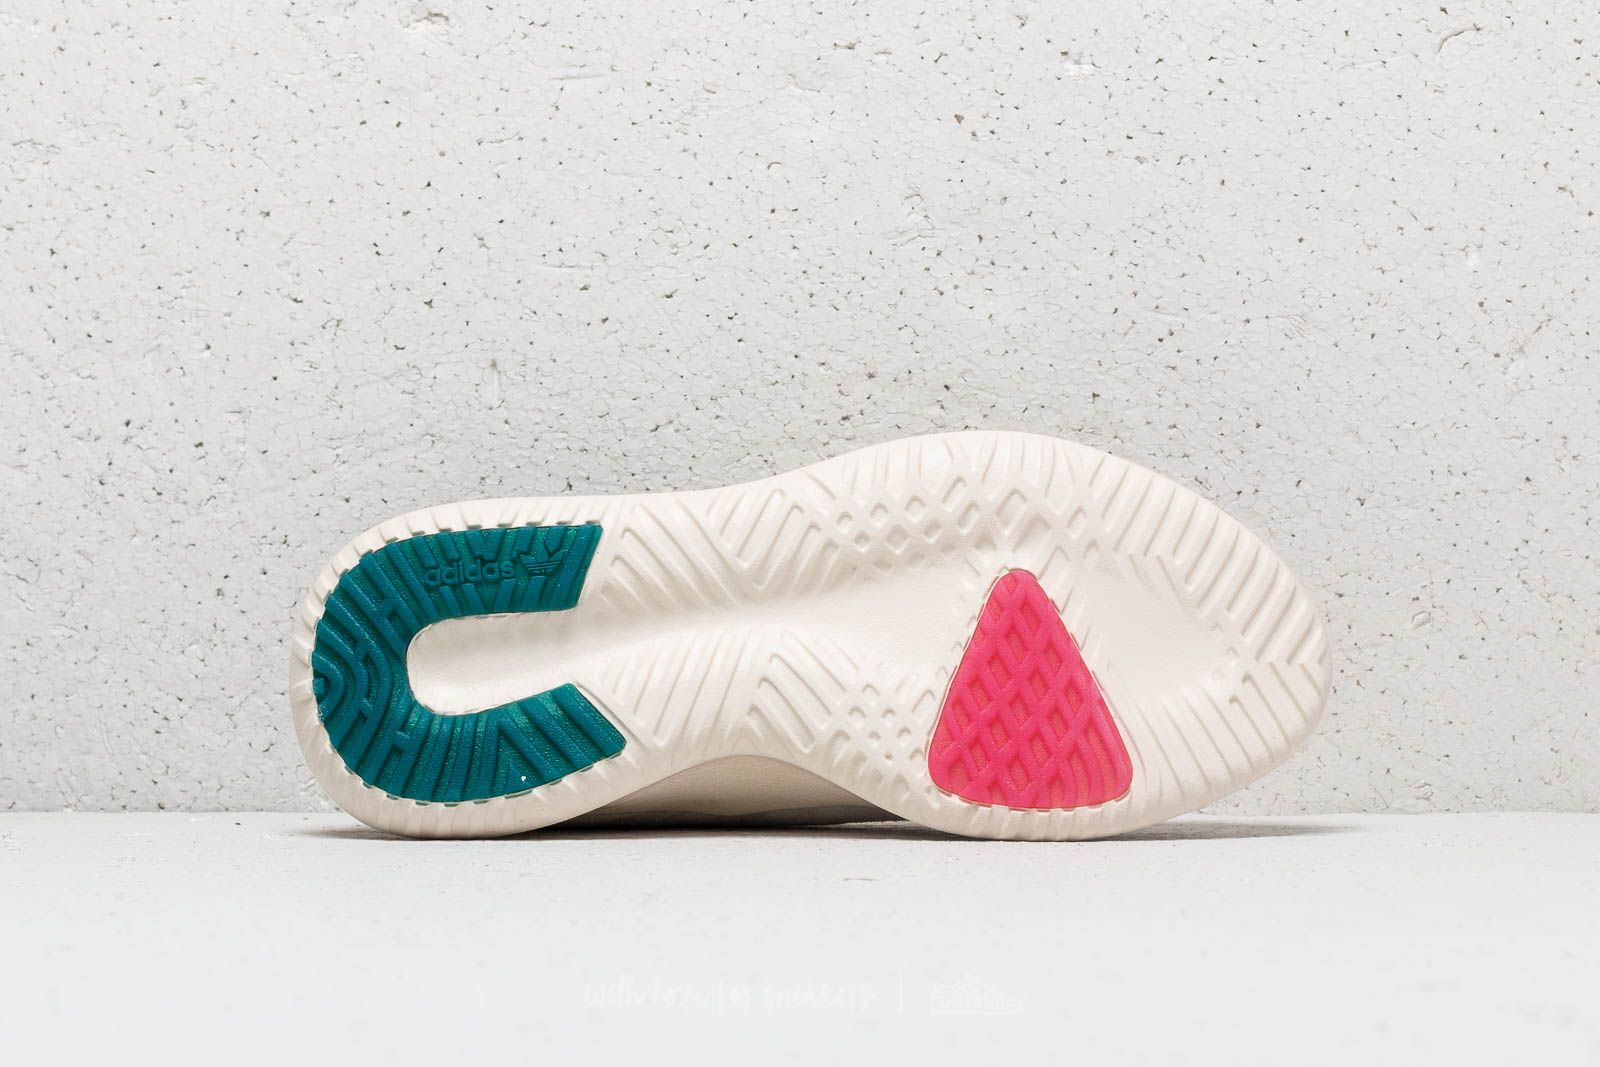 8796b8a0650 ... new zealand adidas tubular shadow w core white shock pink utility green  at a great price